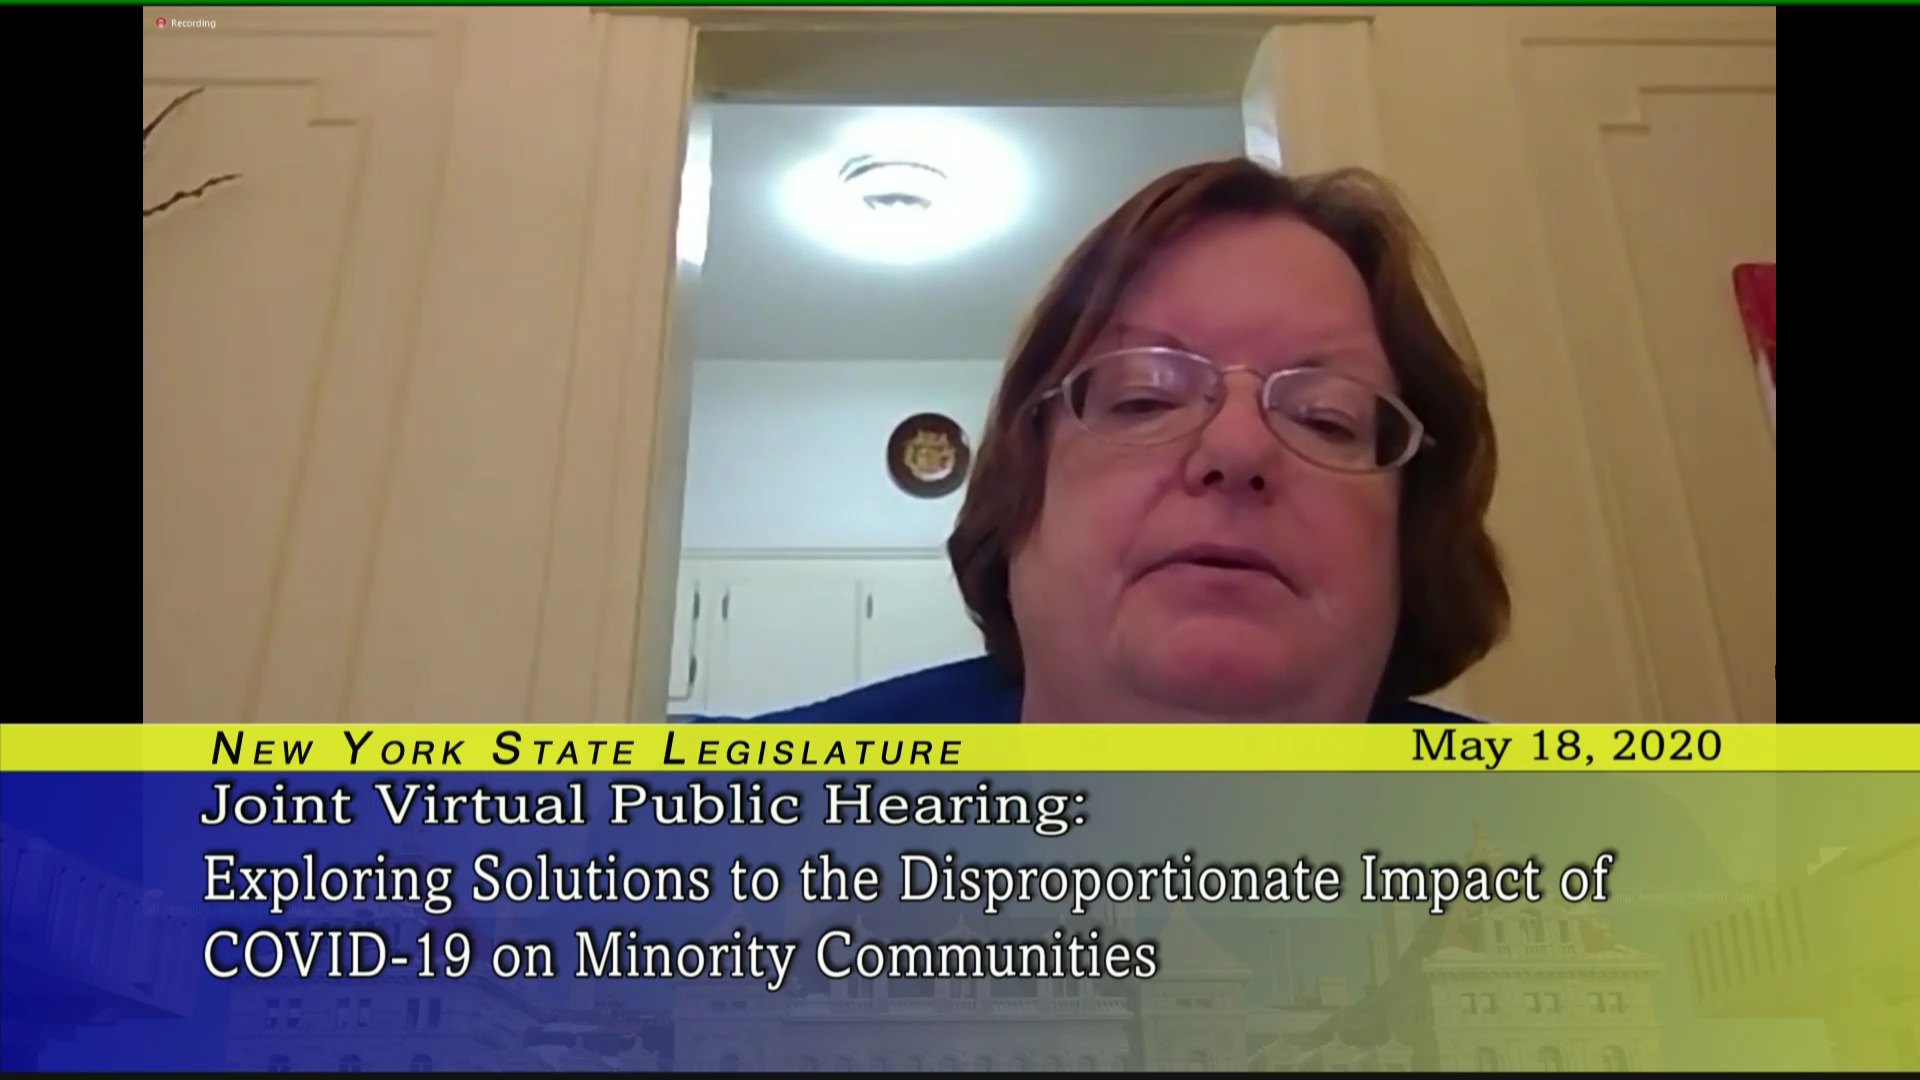 Impact of COVID-19 on Minority Communities